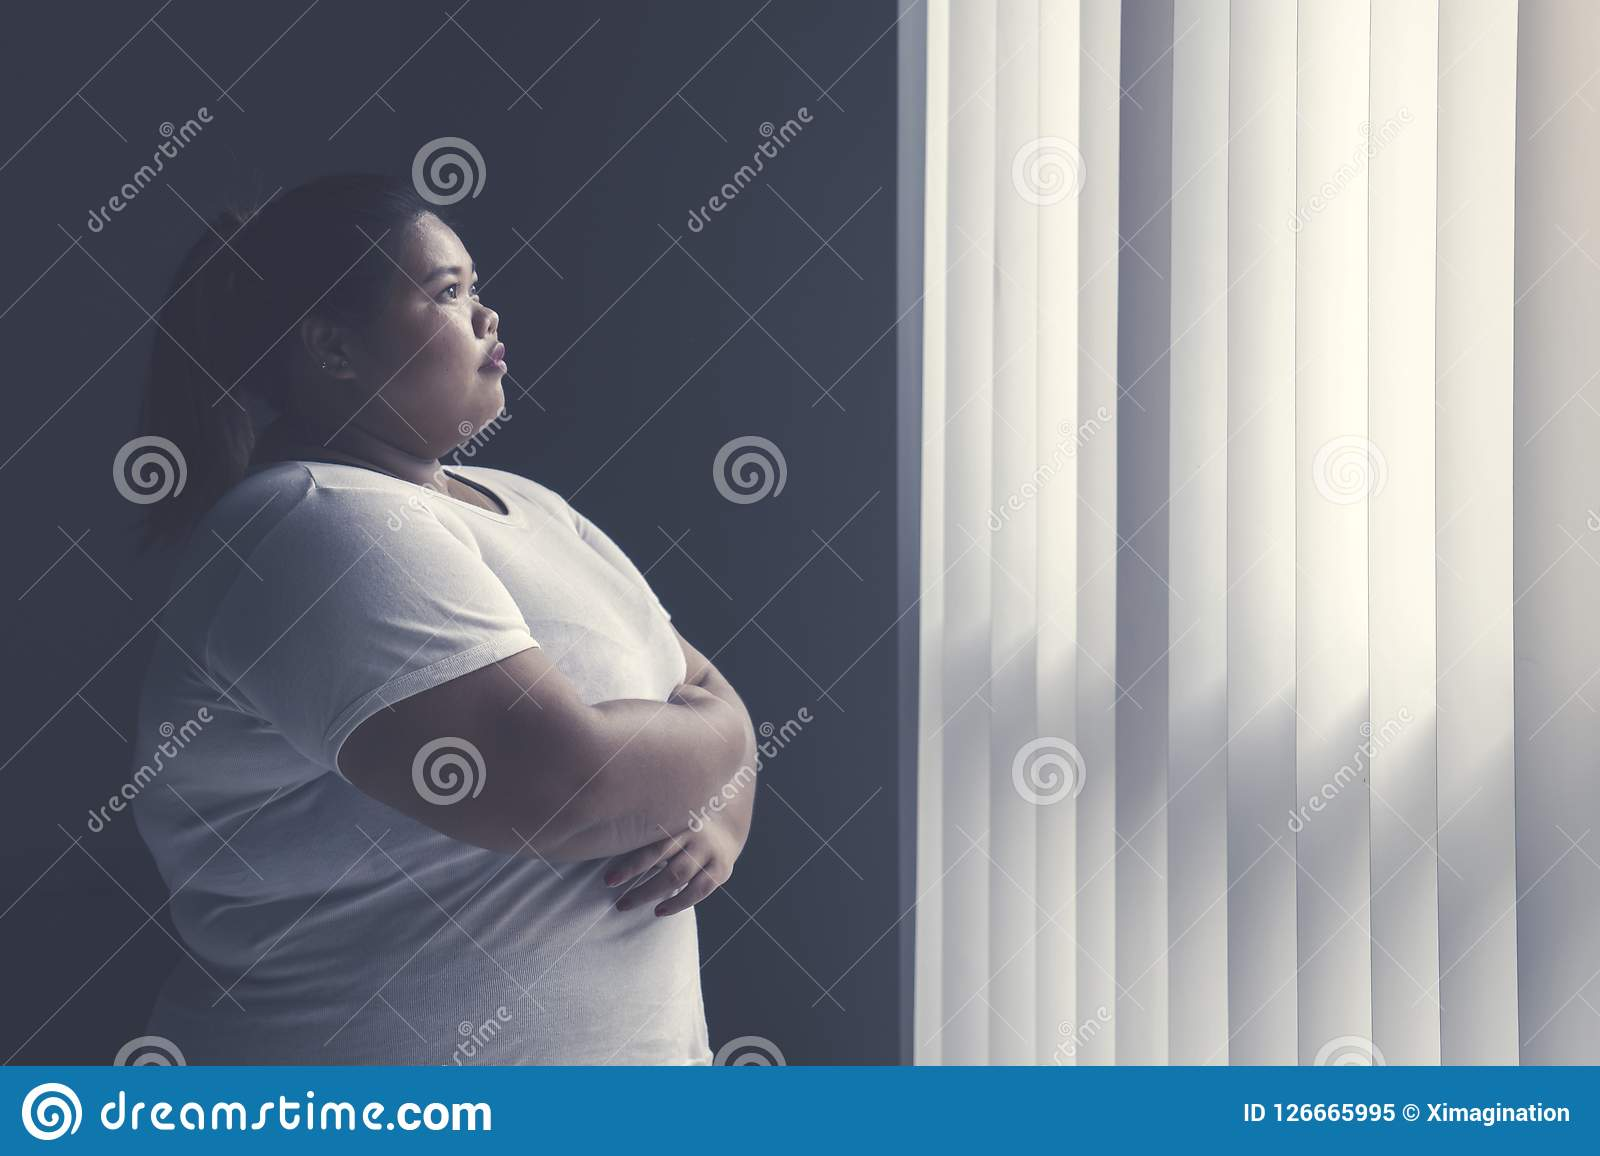 Obese woman daydreaming by the window. Image of obese woman crossed her hands while daydreaming by the window Royalty Free Stock Photo